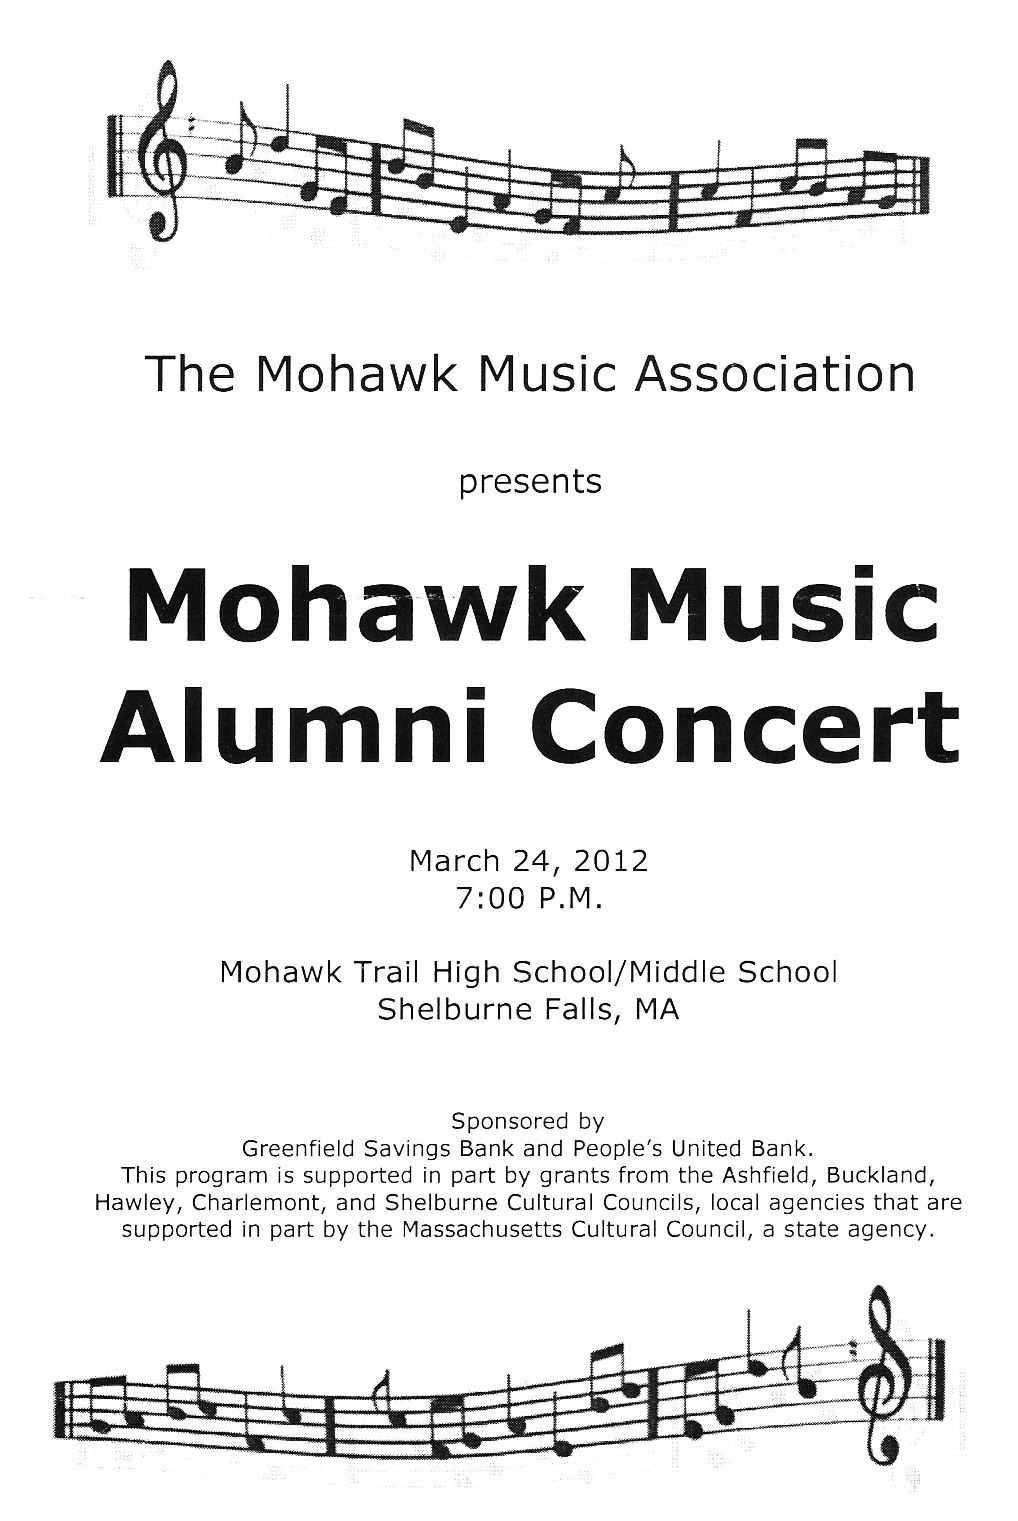 Mohawk Music Association Mohawk Music Alumni Concert Program – Concert Program